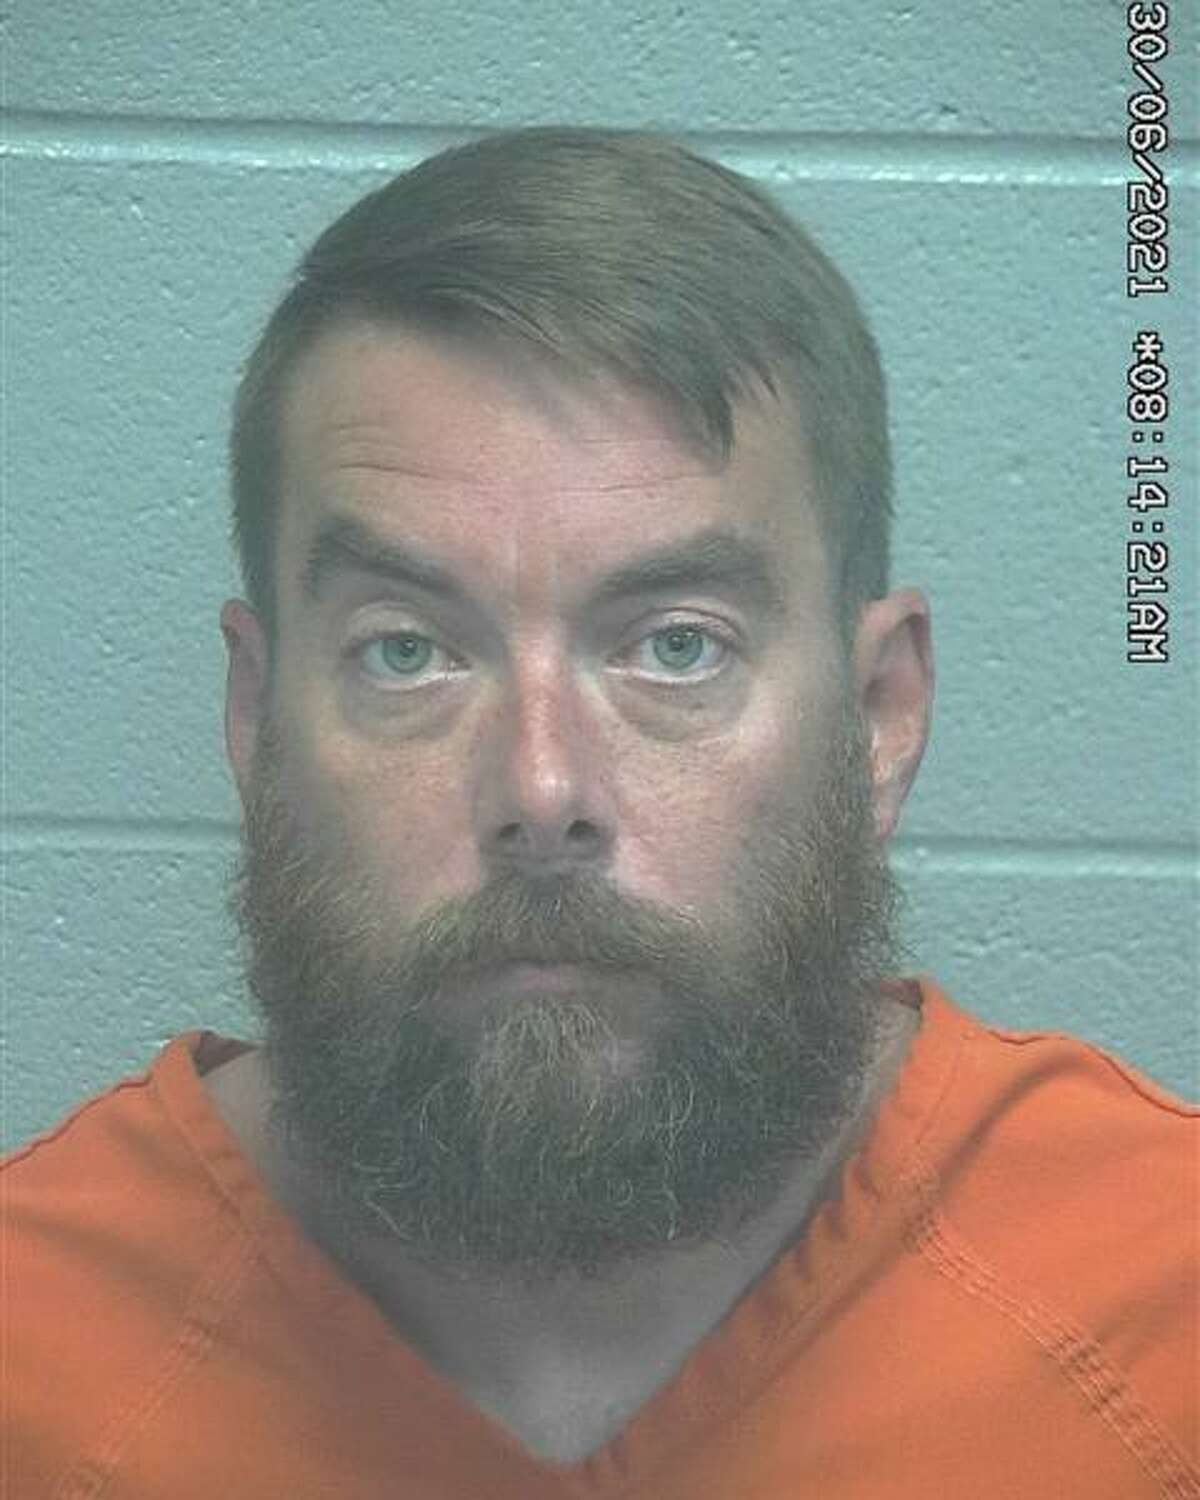 MPD Sergeant Jeremy Swilling was arrested Tuesday, June 29, on a retaliation charge.